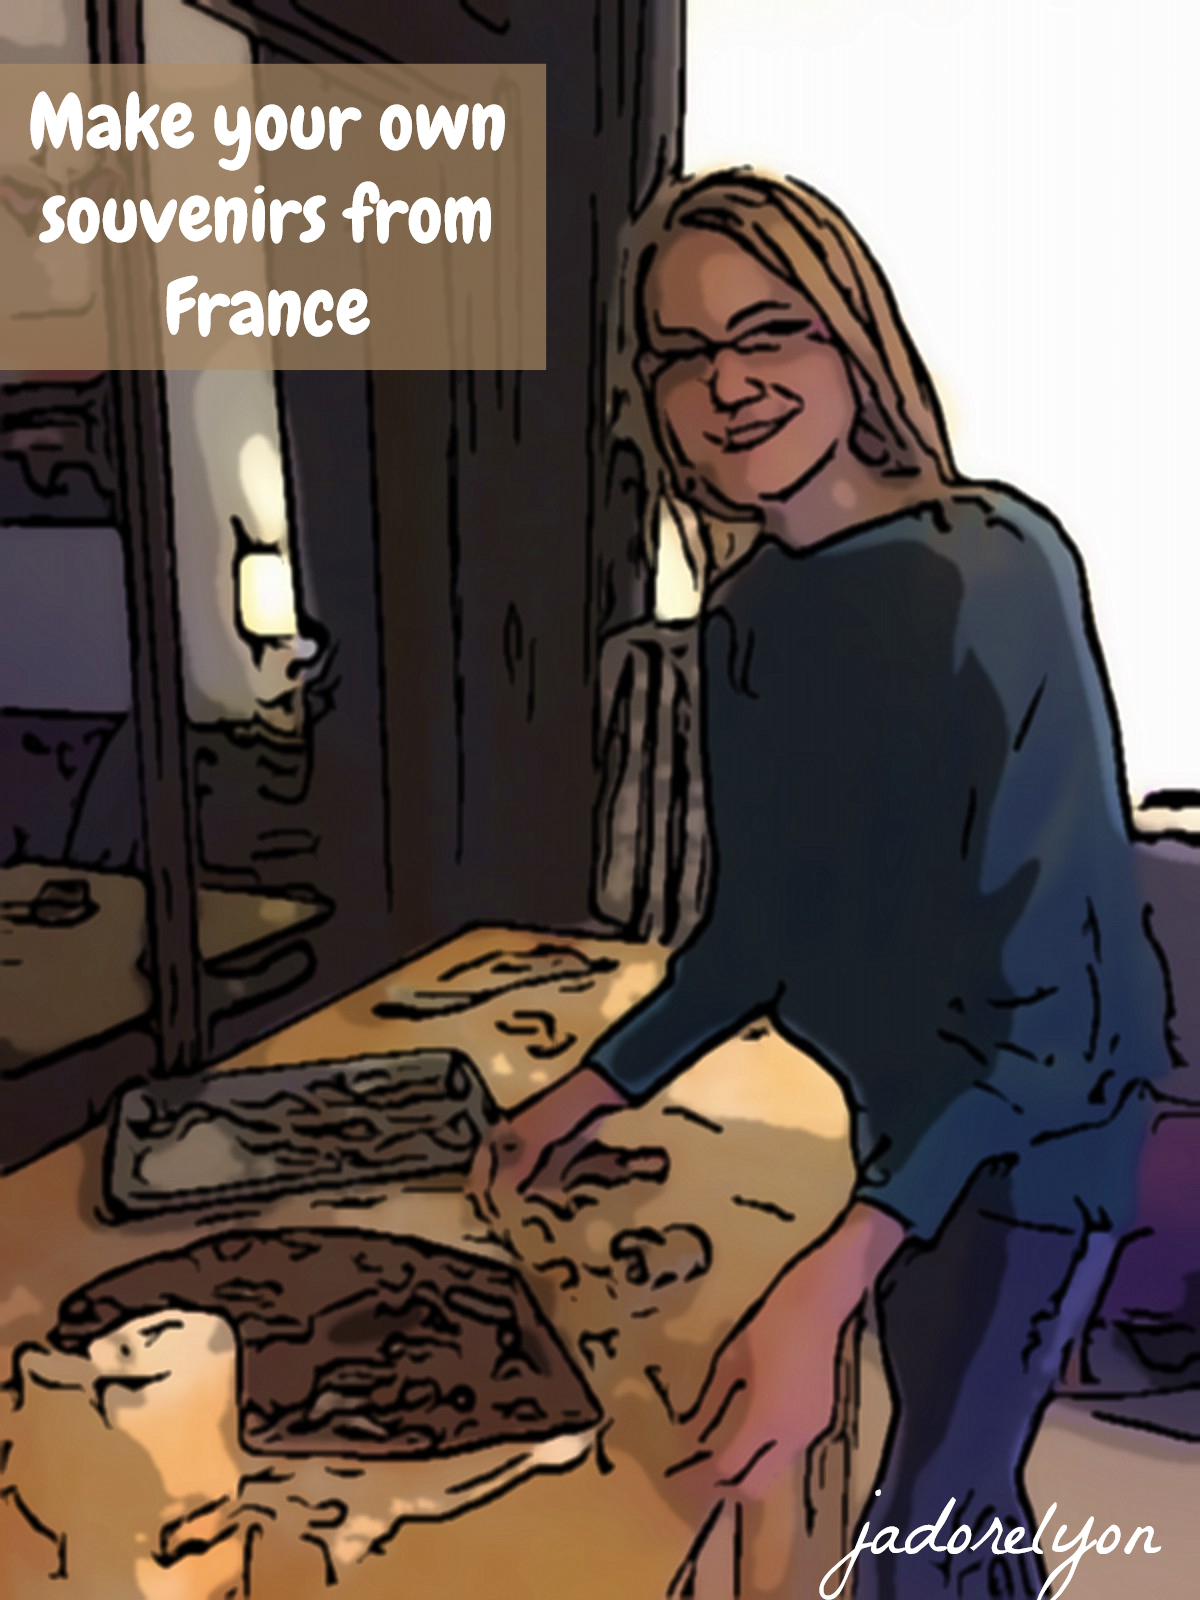 Make your own souvenirs from France1